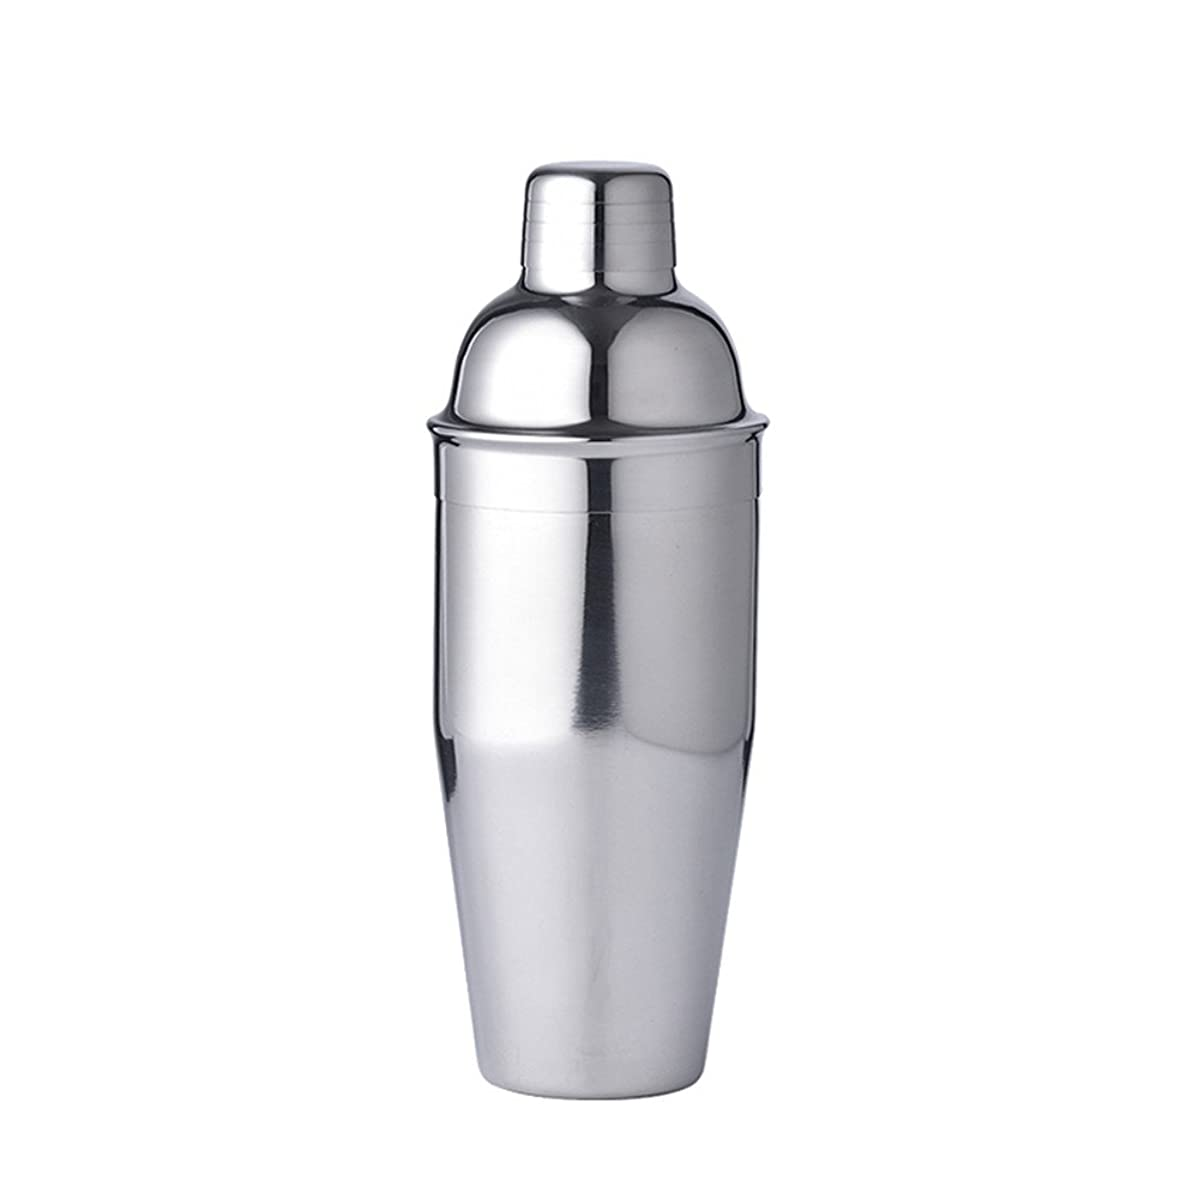 LUCKYGOOBO Stainless Steel Cocktail Shaker,25oz(750ml) Martini Shaker,Bartender Kit,Silver